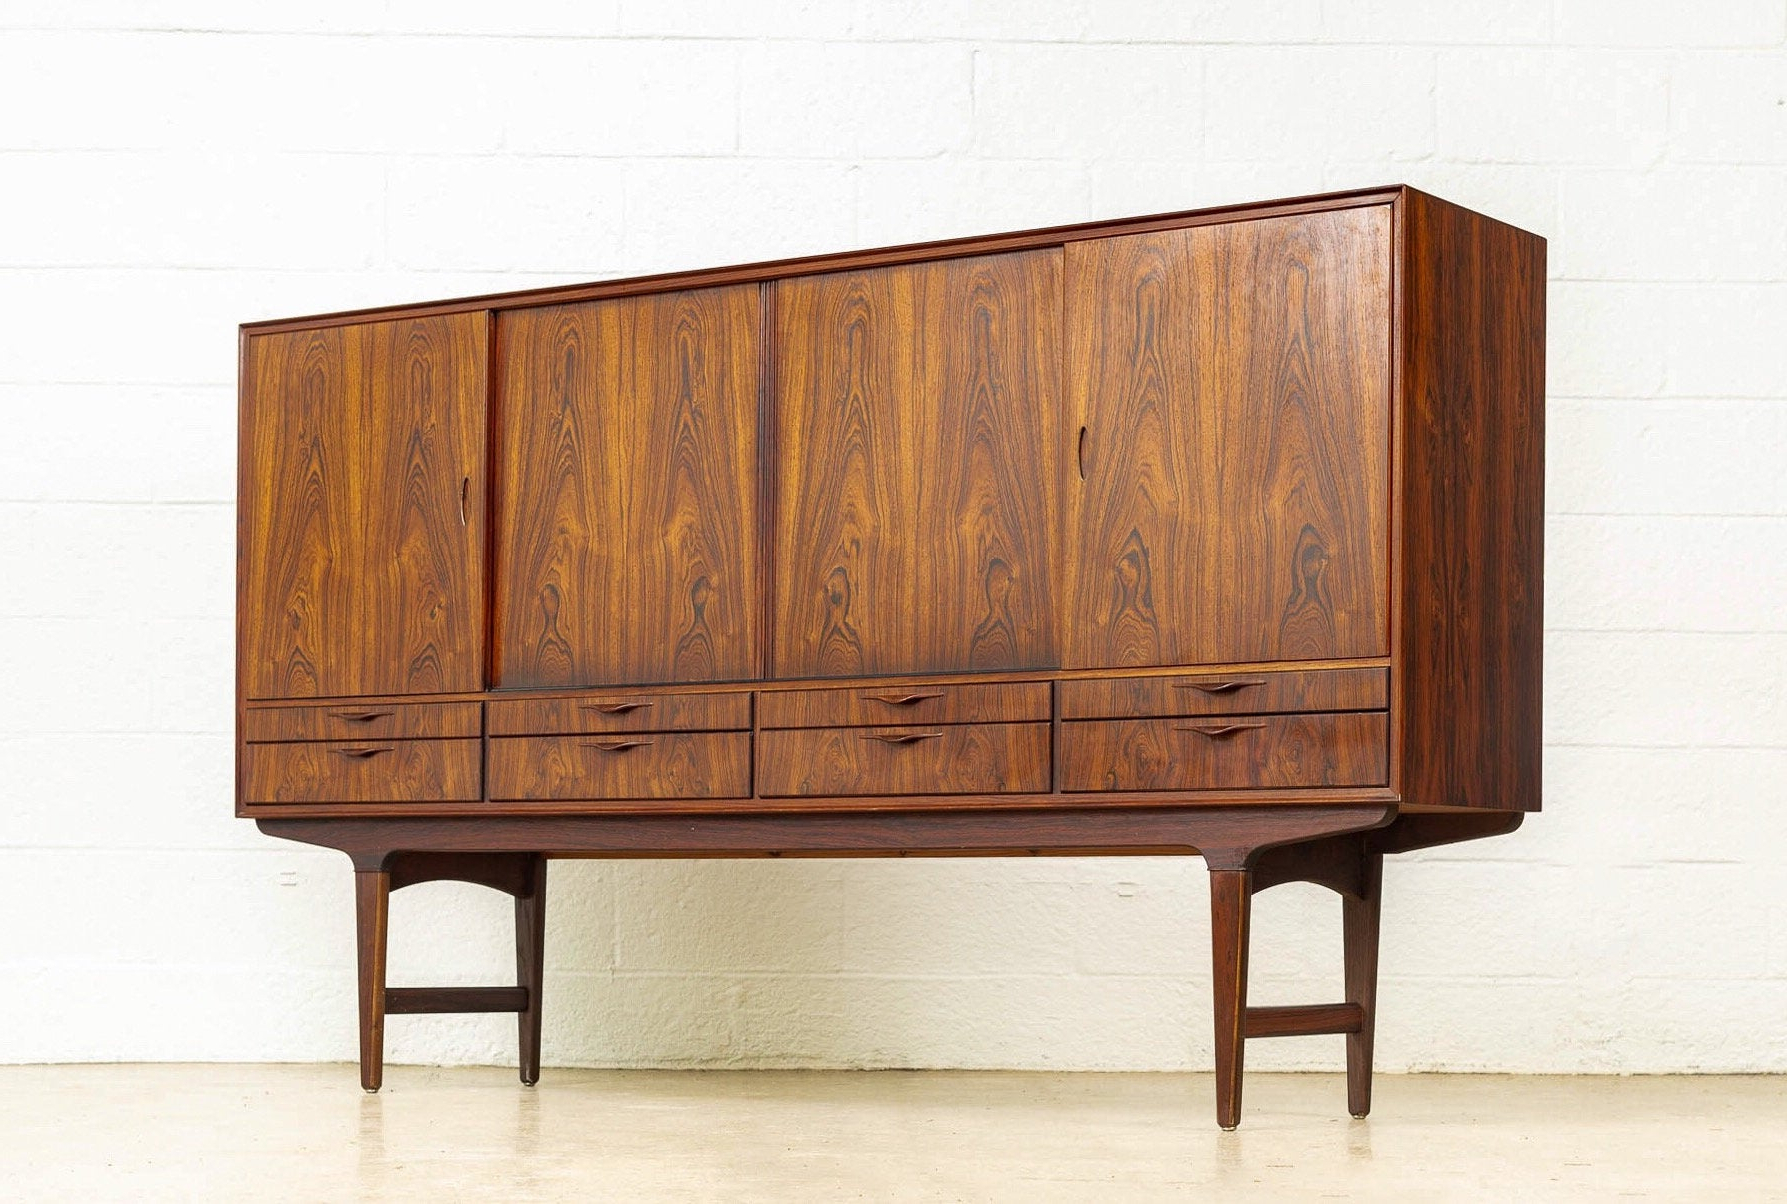 2020 Exceptional Mid Century Danish Modern Tall Rosewood Credenza Sideboard Or Bar Cabinet, 1960s Intended For Deana Credenzas (View 14 of 20)